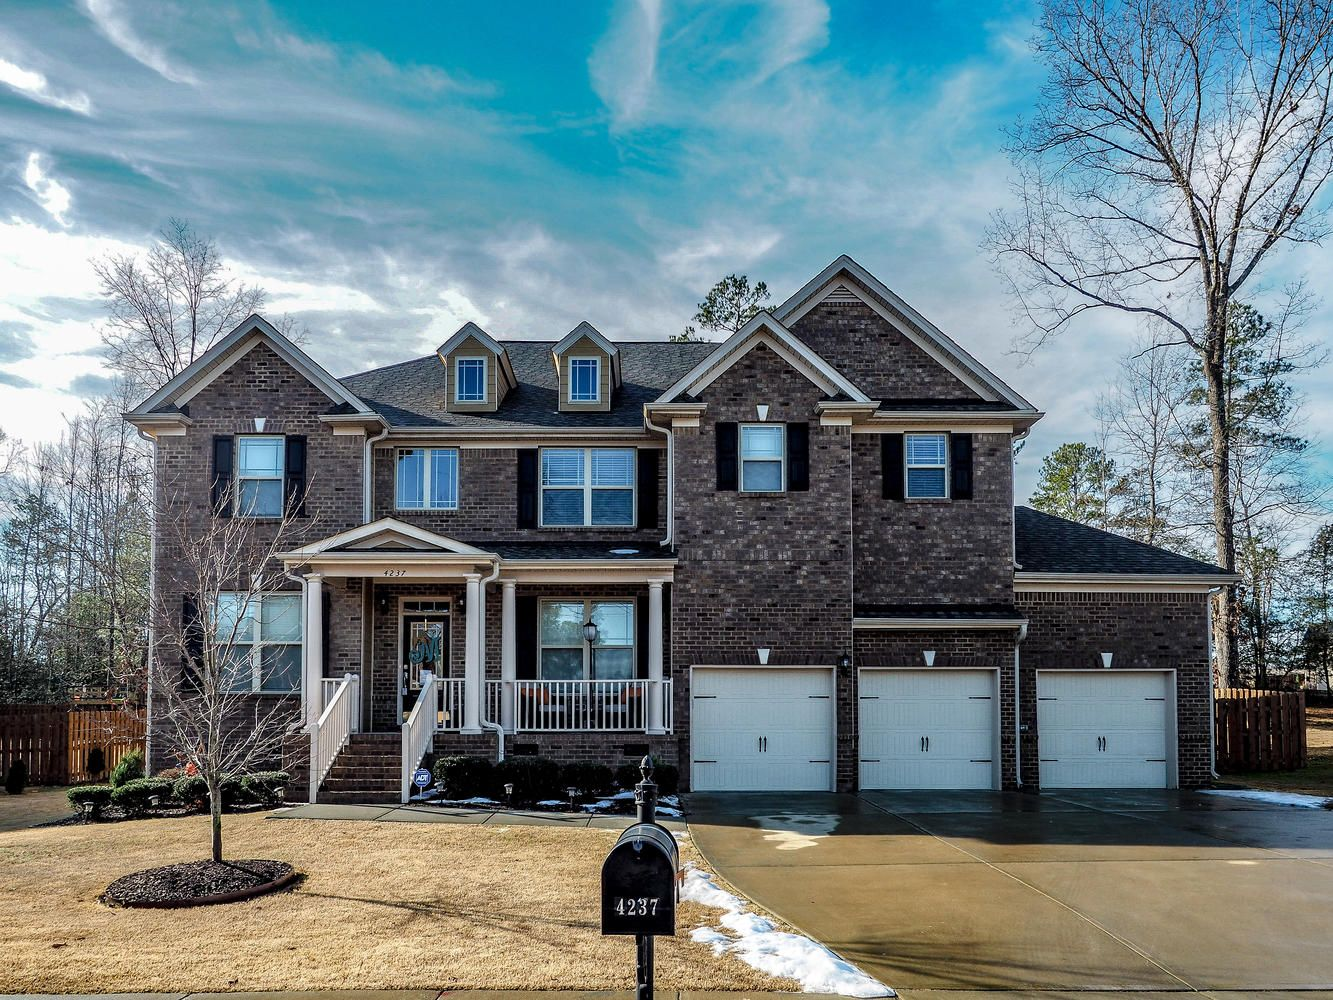 4237 Green Drake Dr Wake Forest 27587 Have You Checked Our Latest Listing Take A Look Wake Forest House Styles Forest